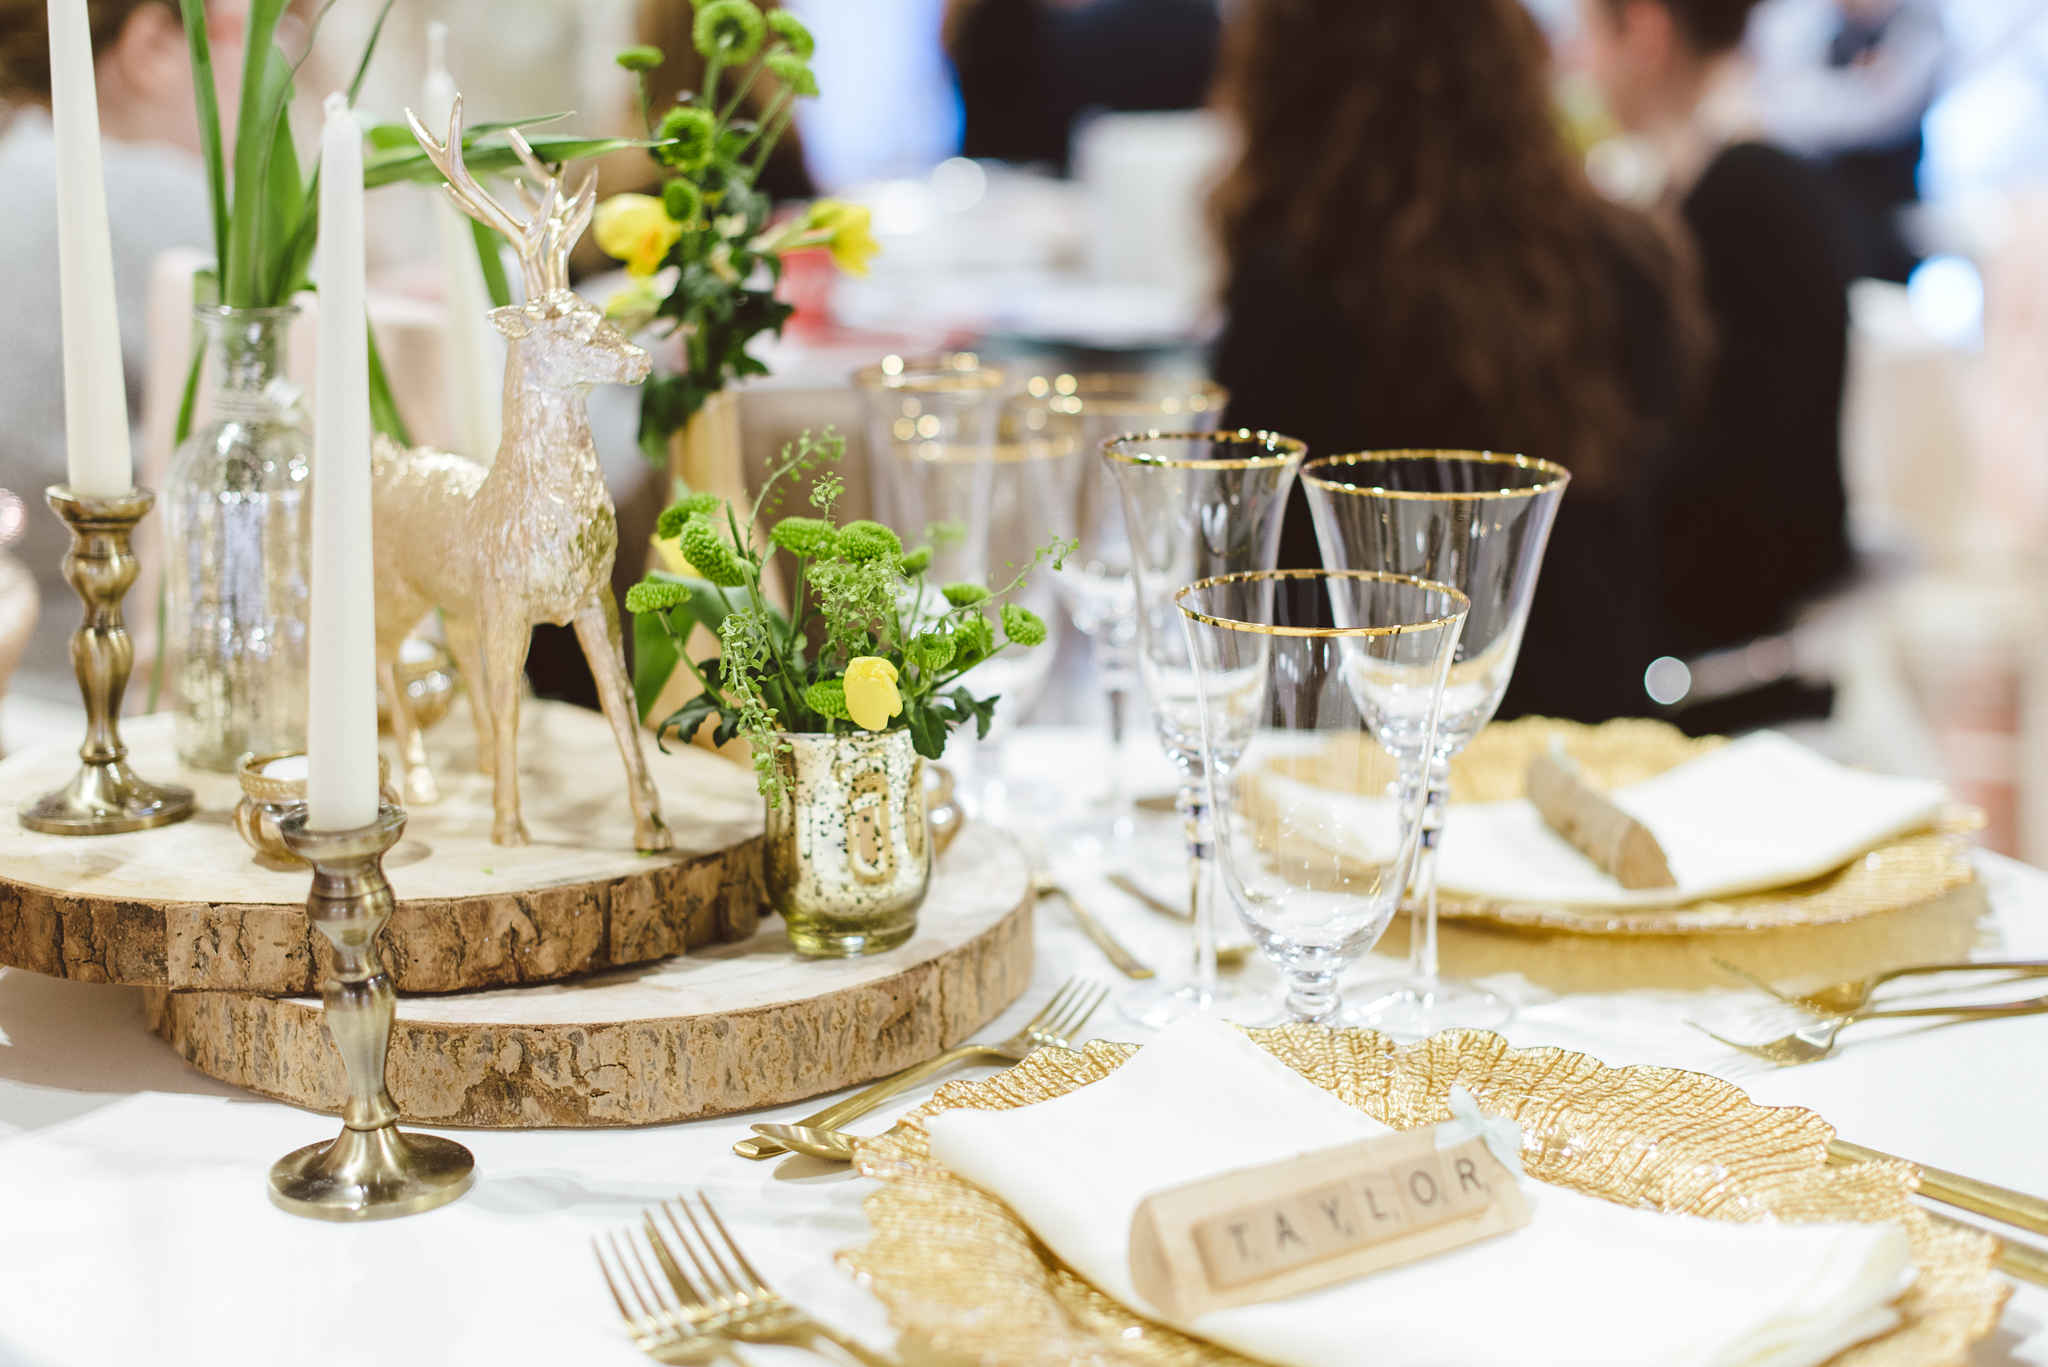 Our Top 7 Tips For Attending The National Wedding Show - The